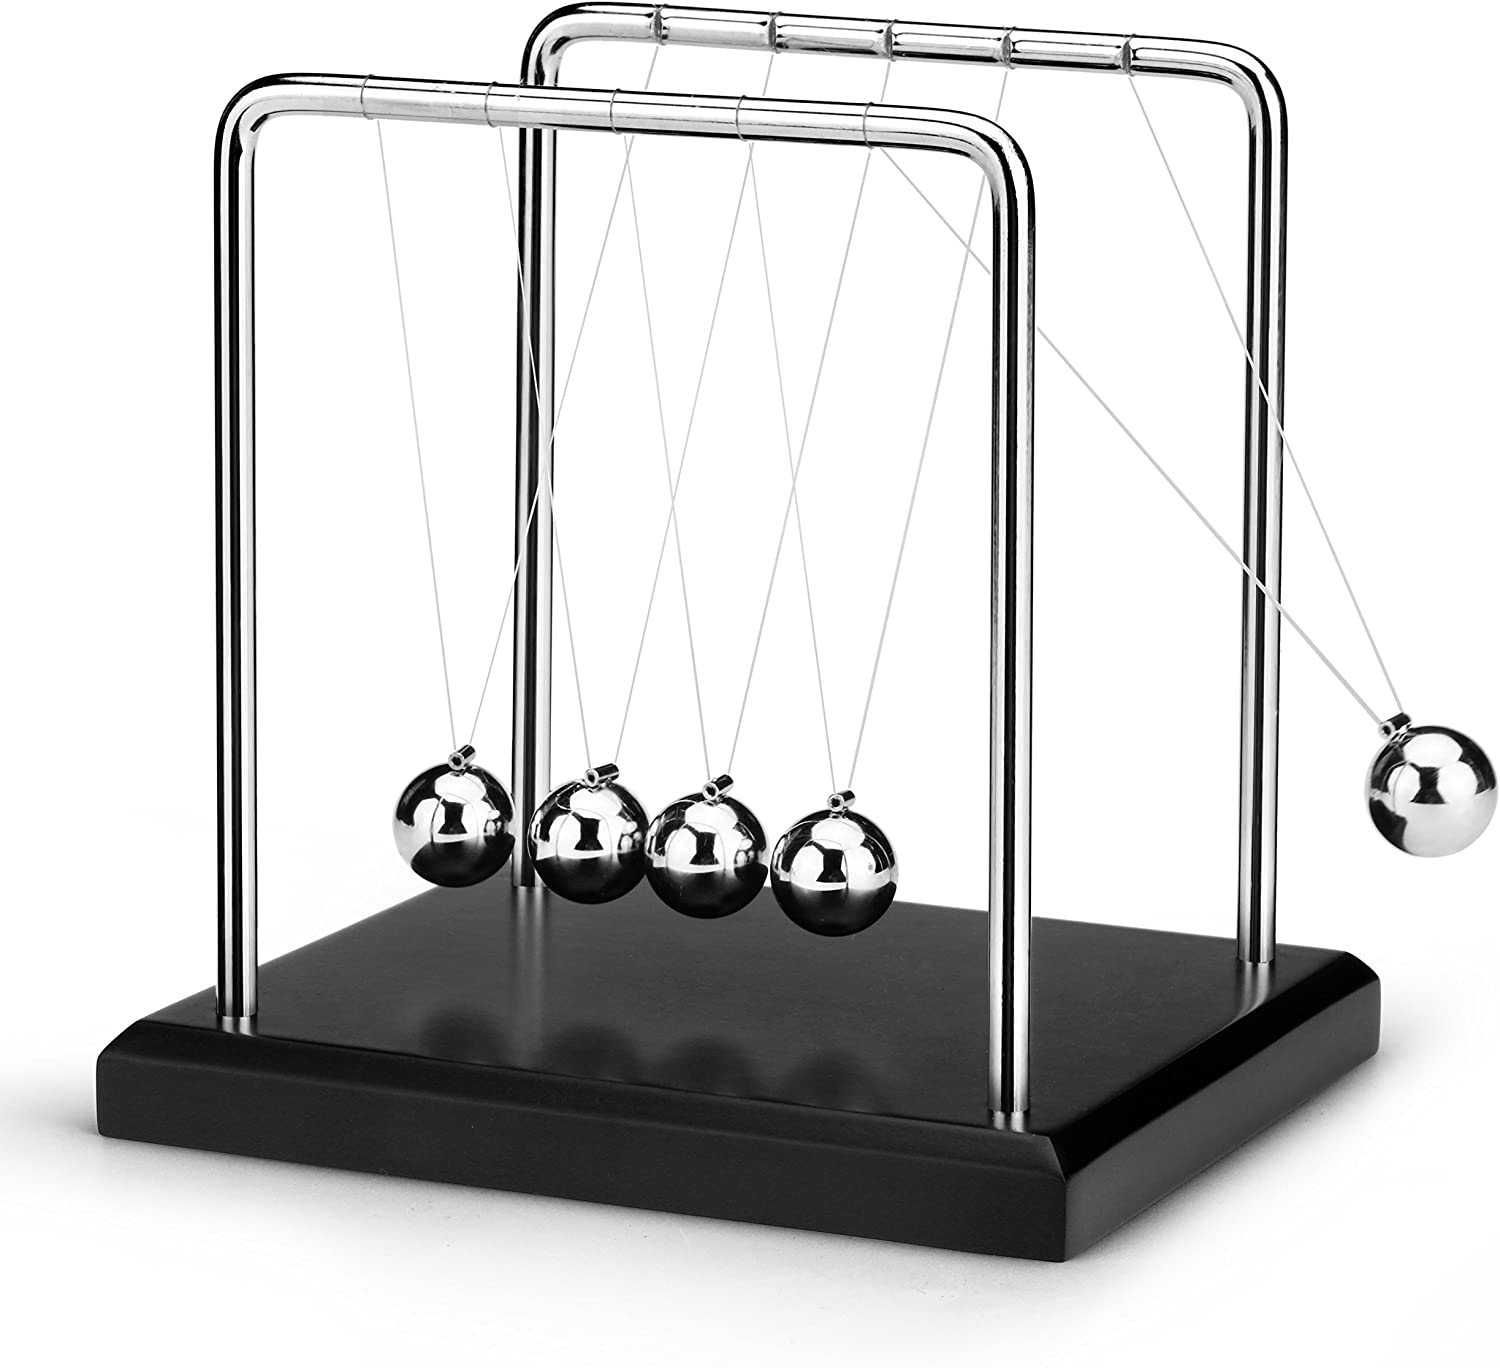 ScienceGeek Genuine Free Shipping Classic Newton's Super beauty product restock quality top Cradle Balance Toy Home Desk Balls